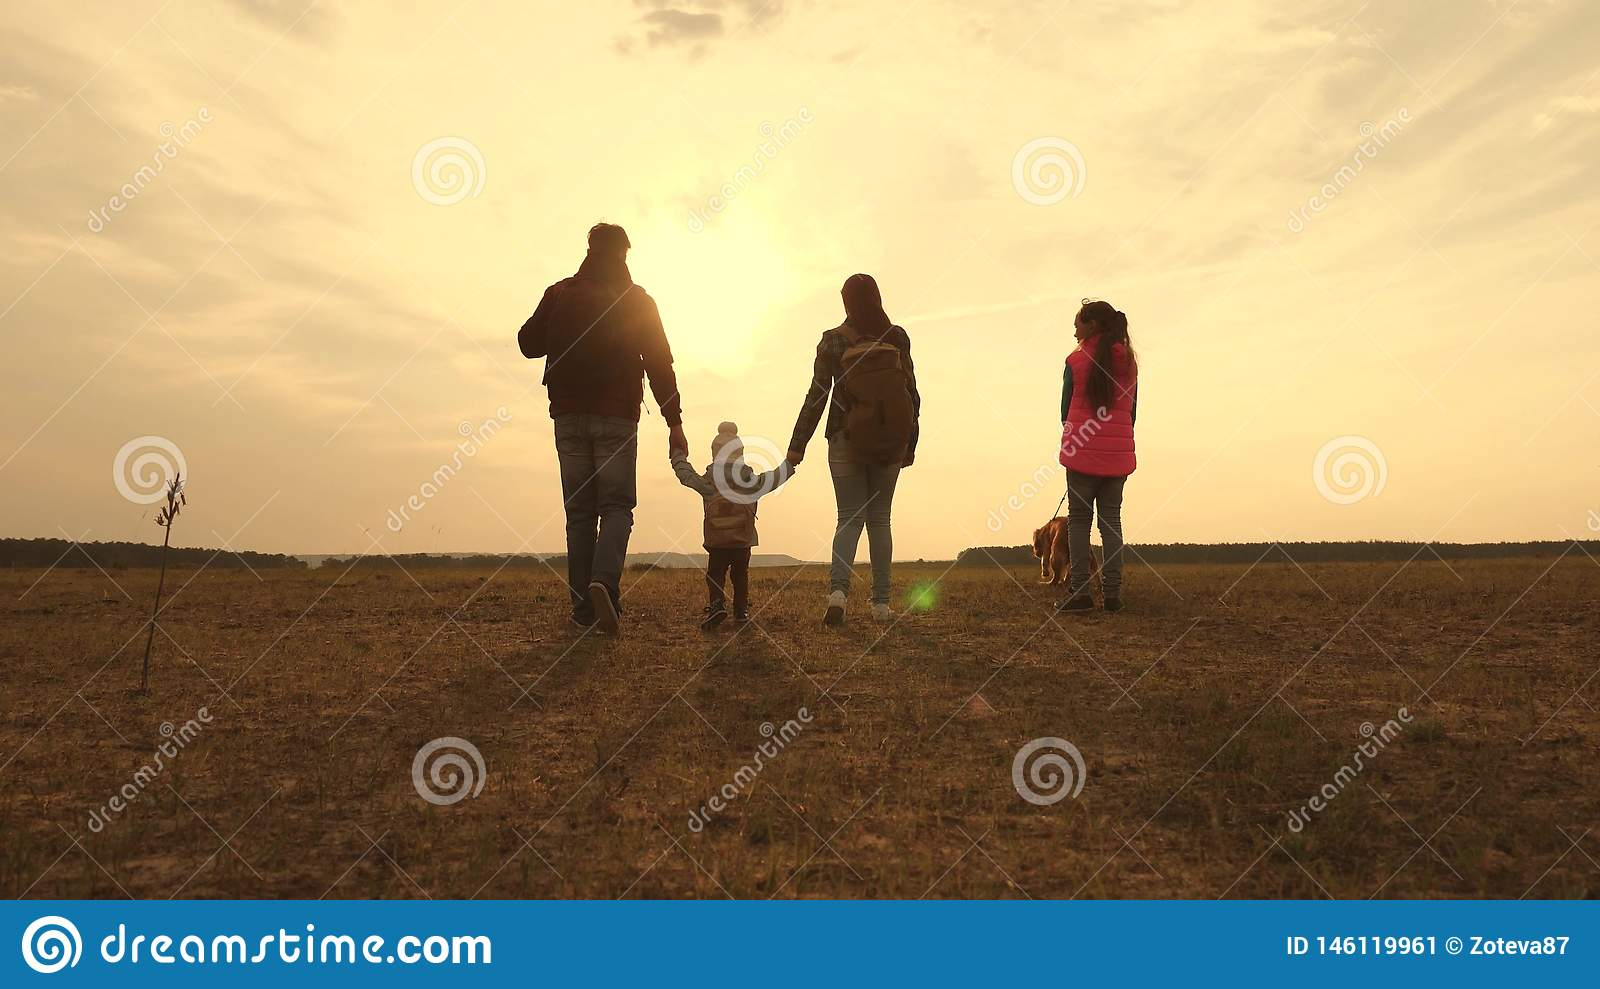 Dad, Mom, a small child and daughters and pets tourists. teamwork of a close-knit family. family travels with the dog on